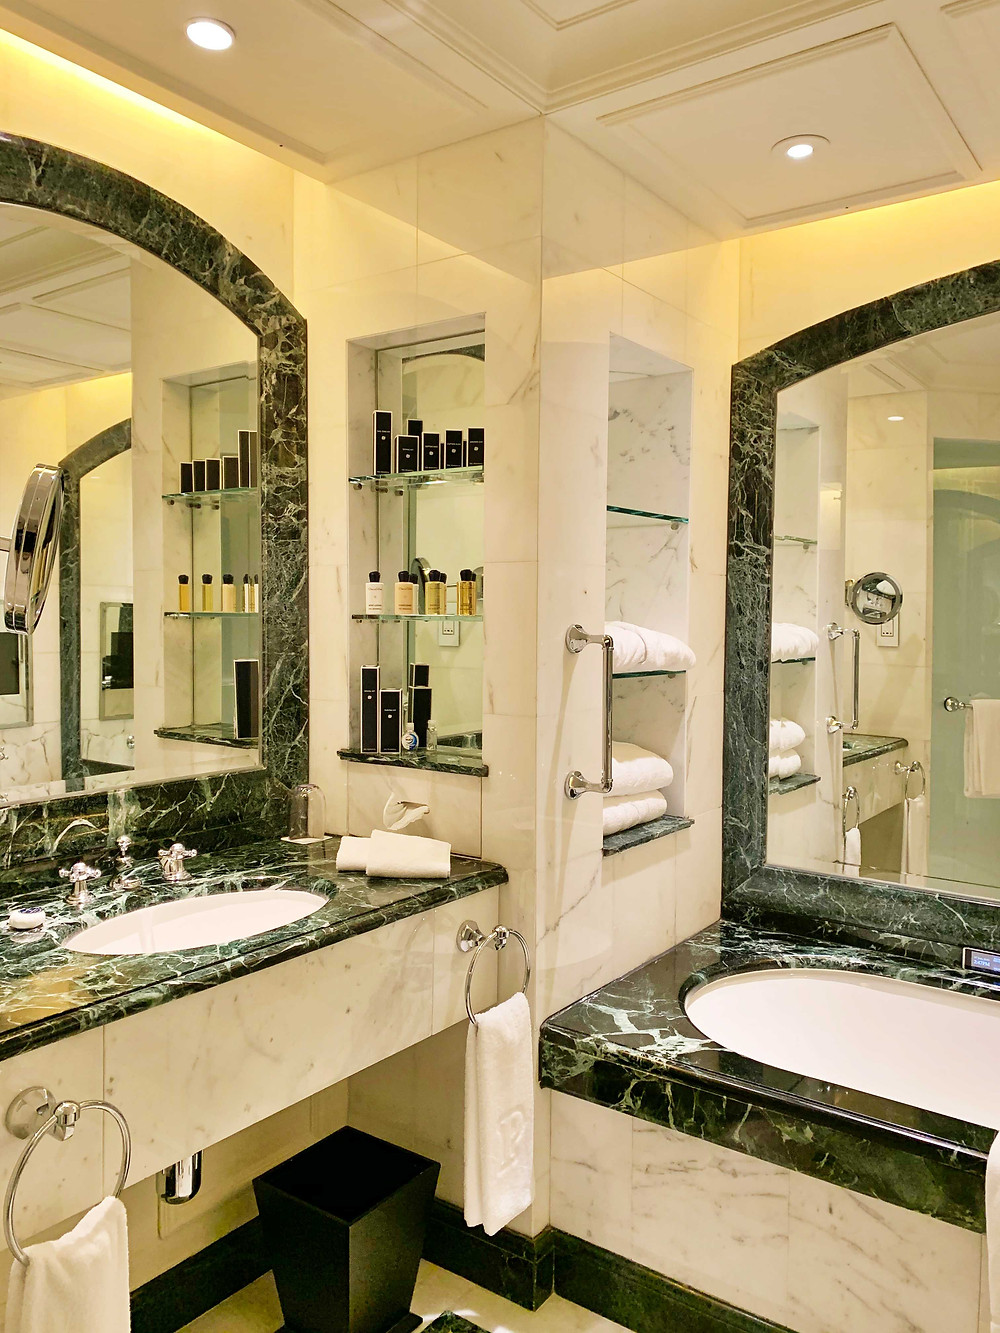 Bathroom at Peninsula Hotel Hong Kong